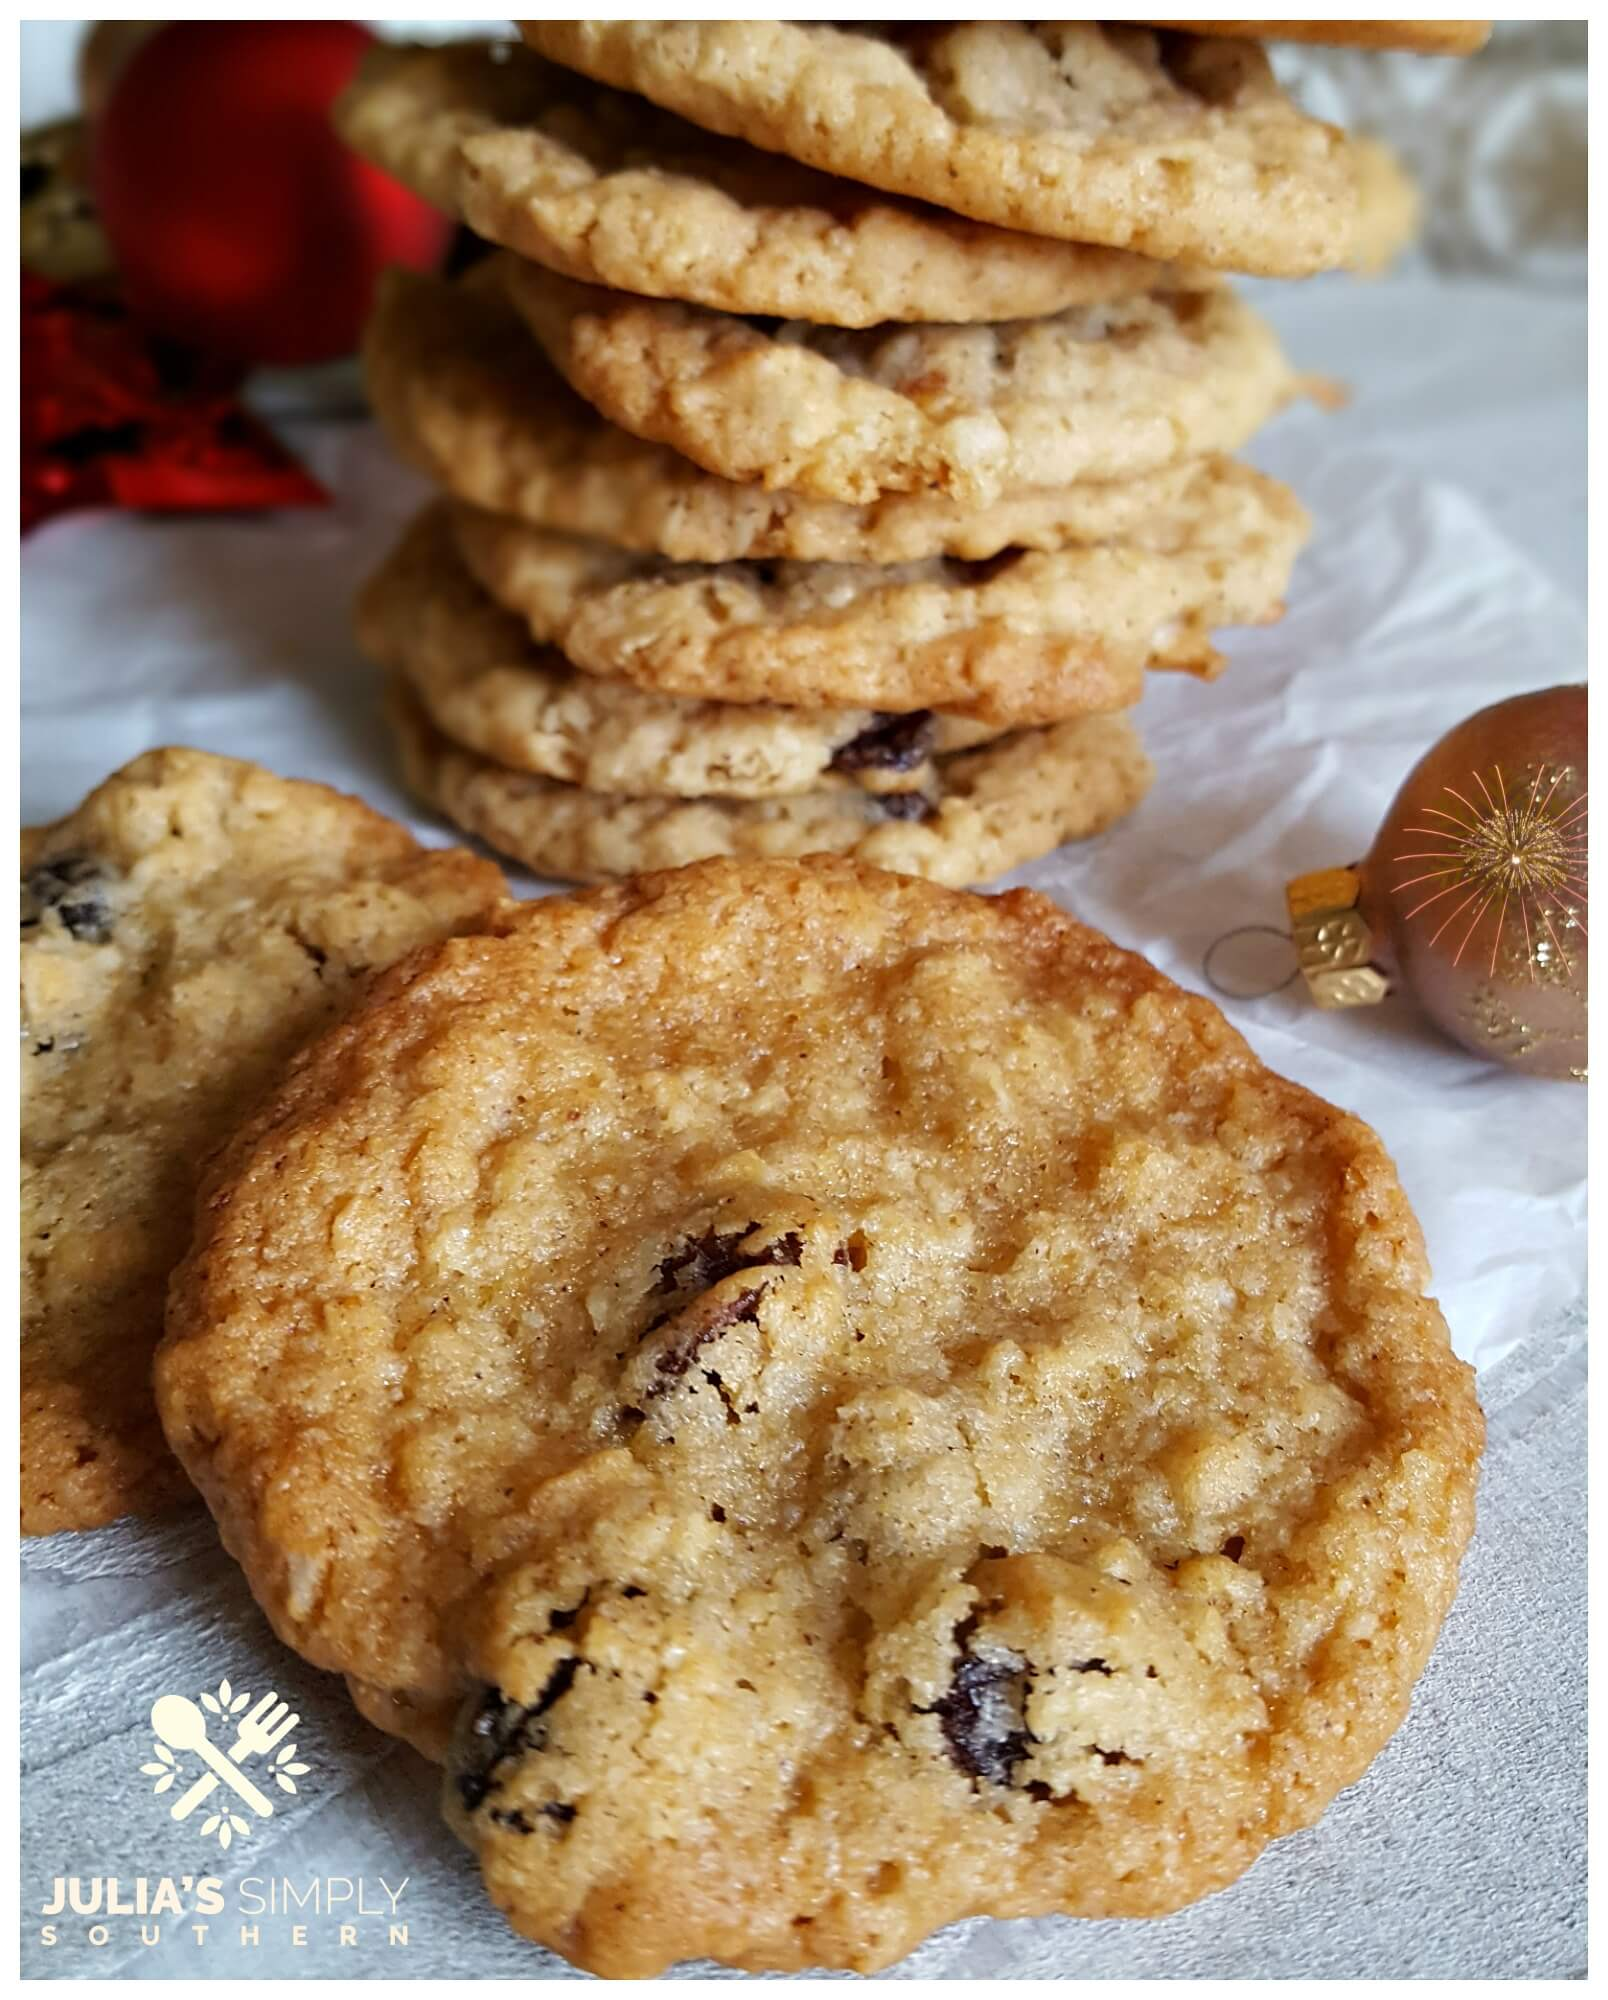 Most delicious oatmeal raisin cookies - soft and chewy